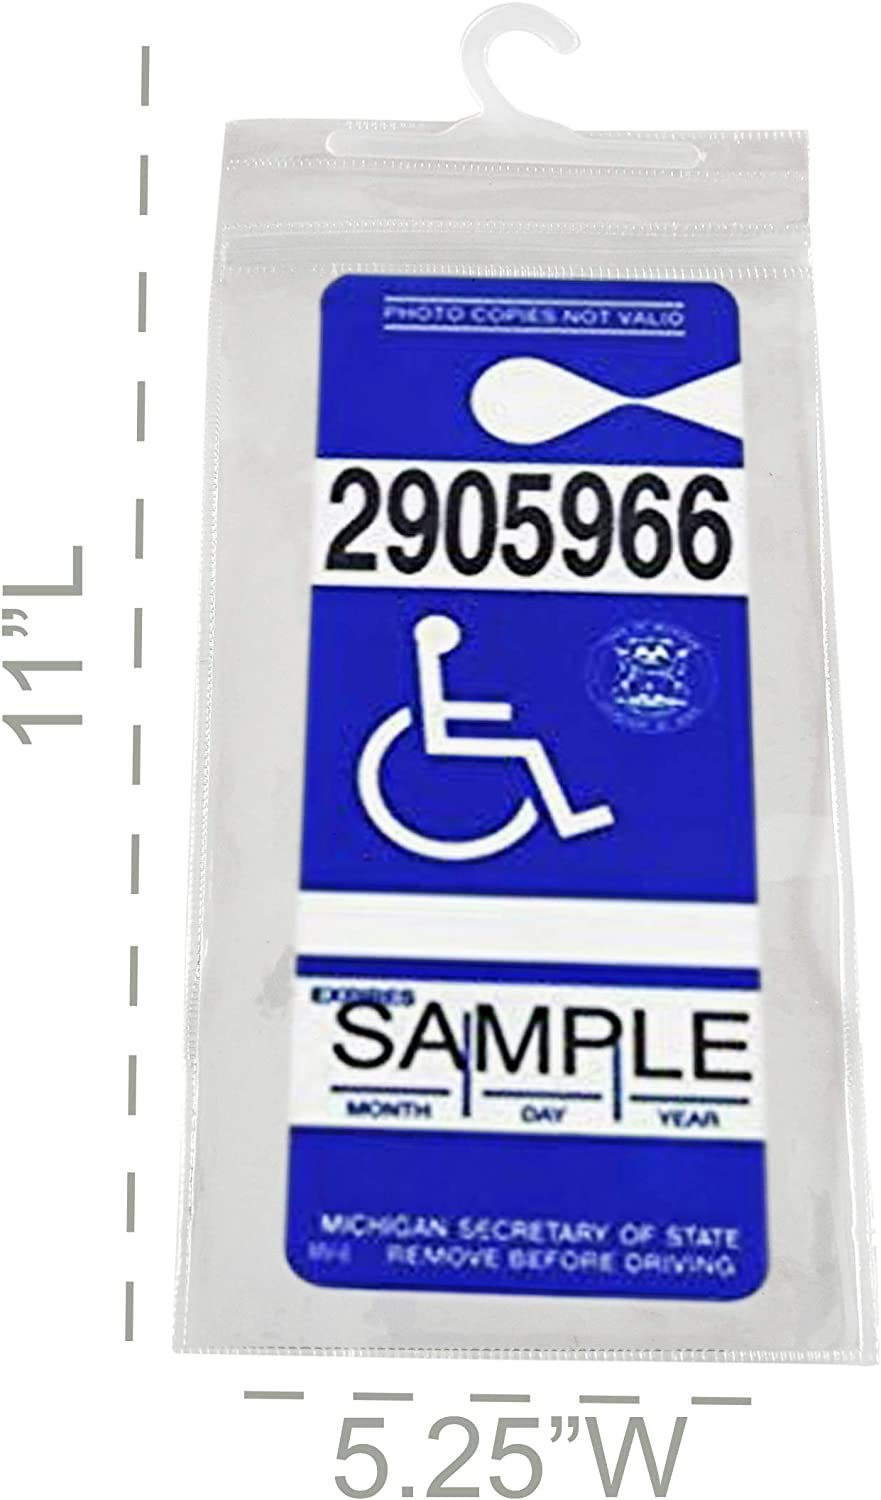 Disabled Parking Permit Holder Hanger Sleeve with Larger Hook by Tbuymax Set of 2 Handicap Parking Placard Holder